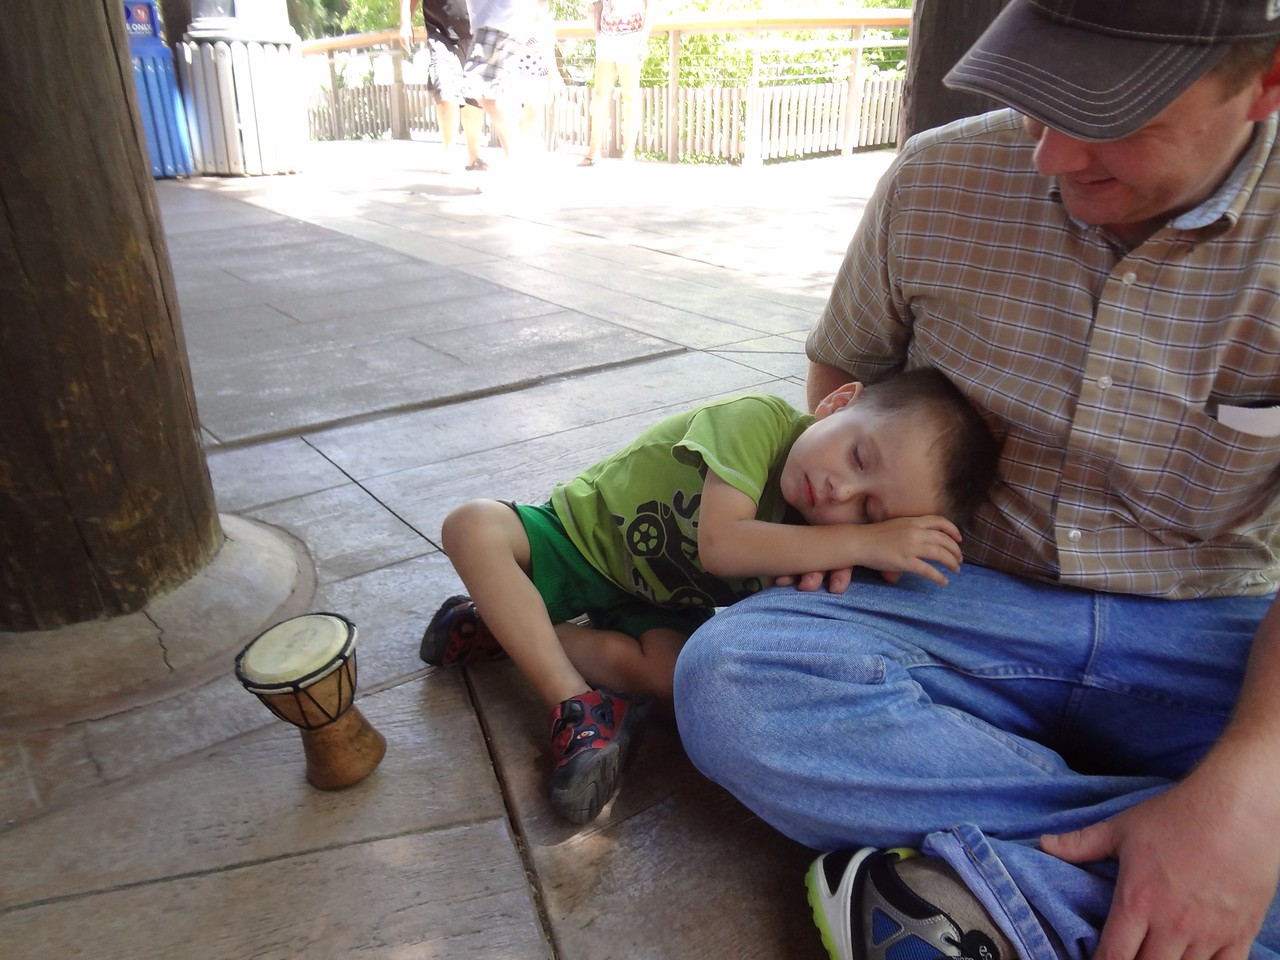 Walking around at the zoo made Paul tired